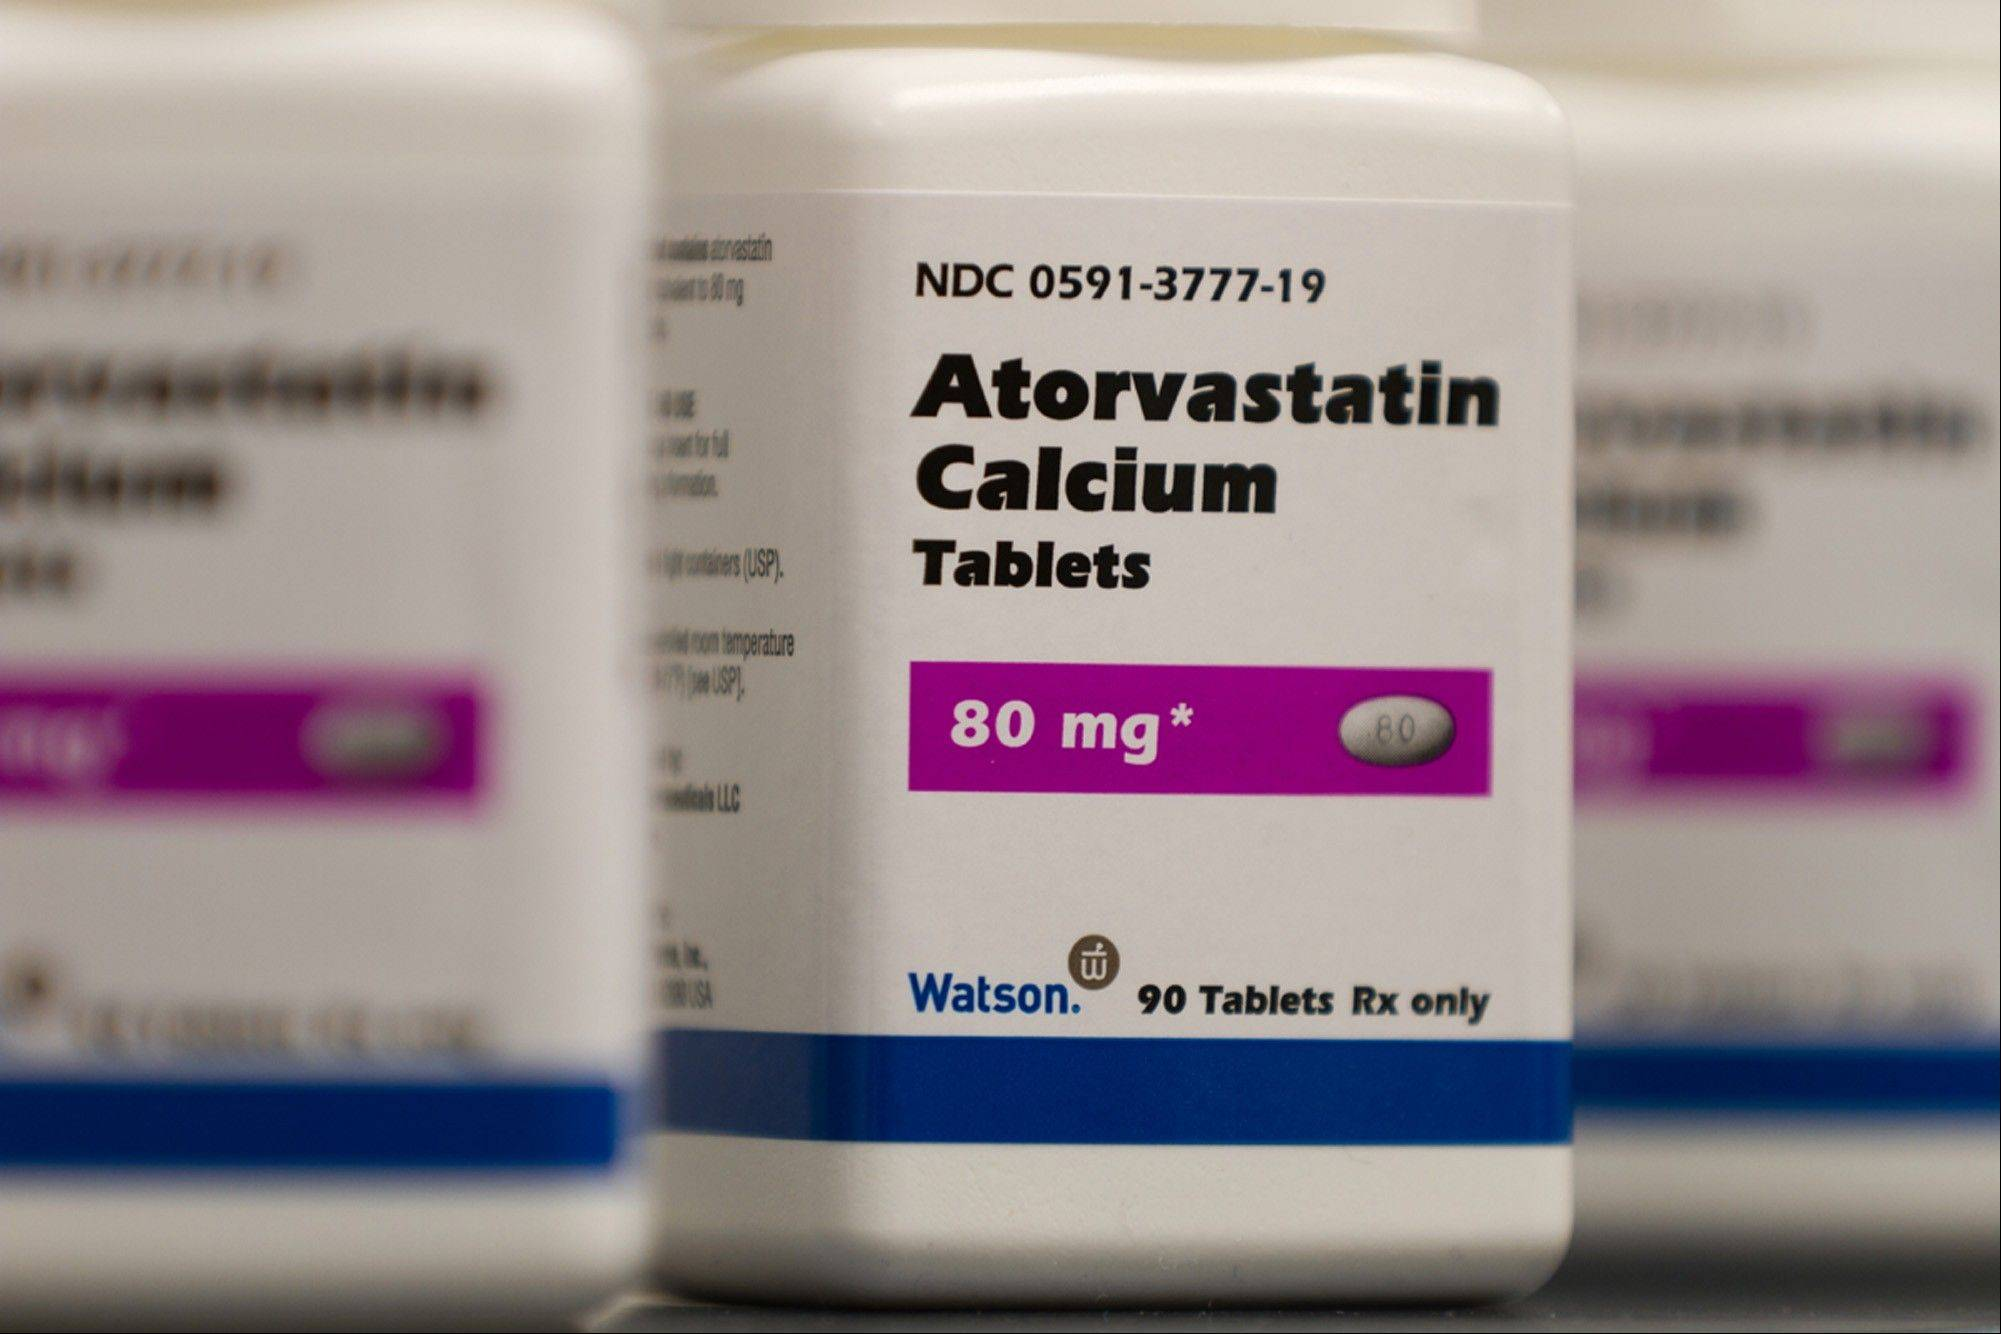 Atorvastatin Calcium tablets, a generic form of Lipitor, is being sold under a deal with Pfizer. The nation's first new guidelines in a decade for preventing heart attacks and strokes call for twice as many Americans — one-third of all adults — to consider taking cholesterol-lowering statin drugs.